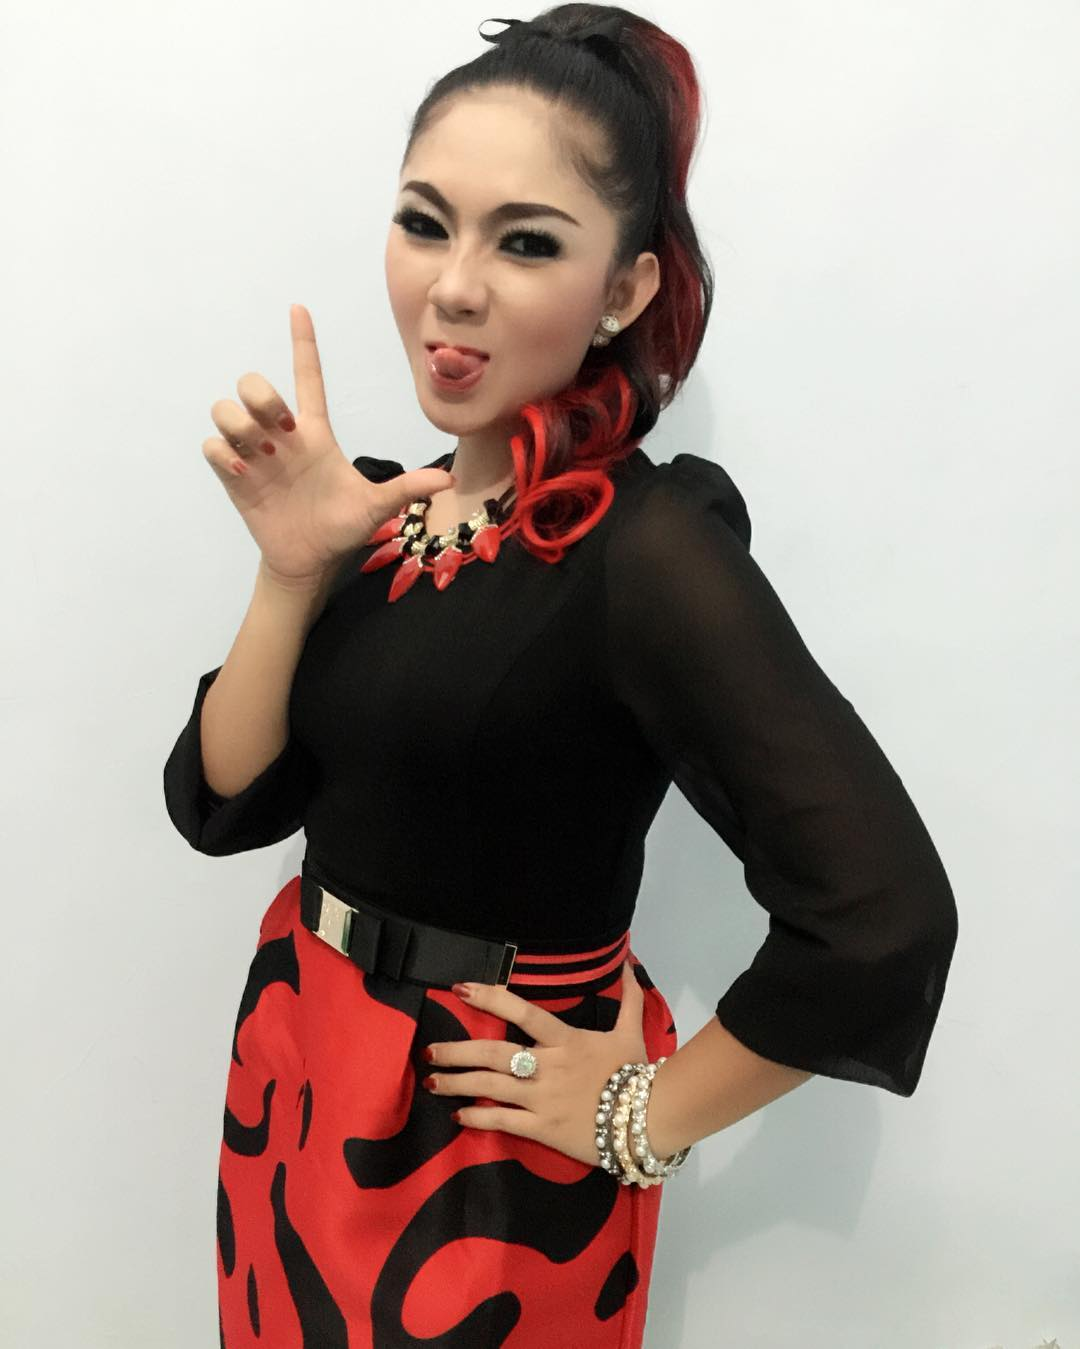 Download Kumpulan Foto Ratna Antika : Kiddle.ID